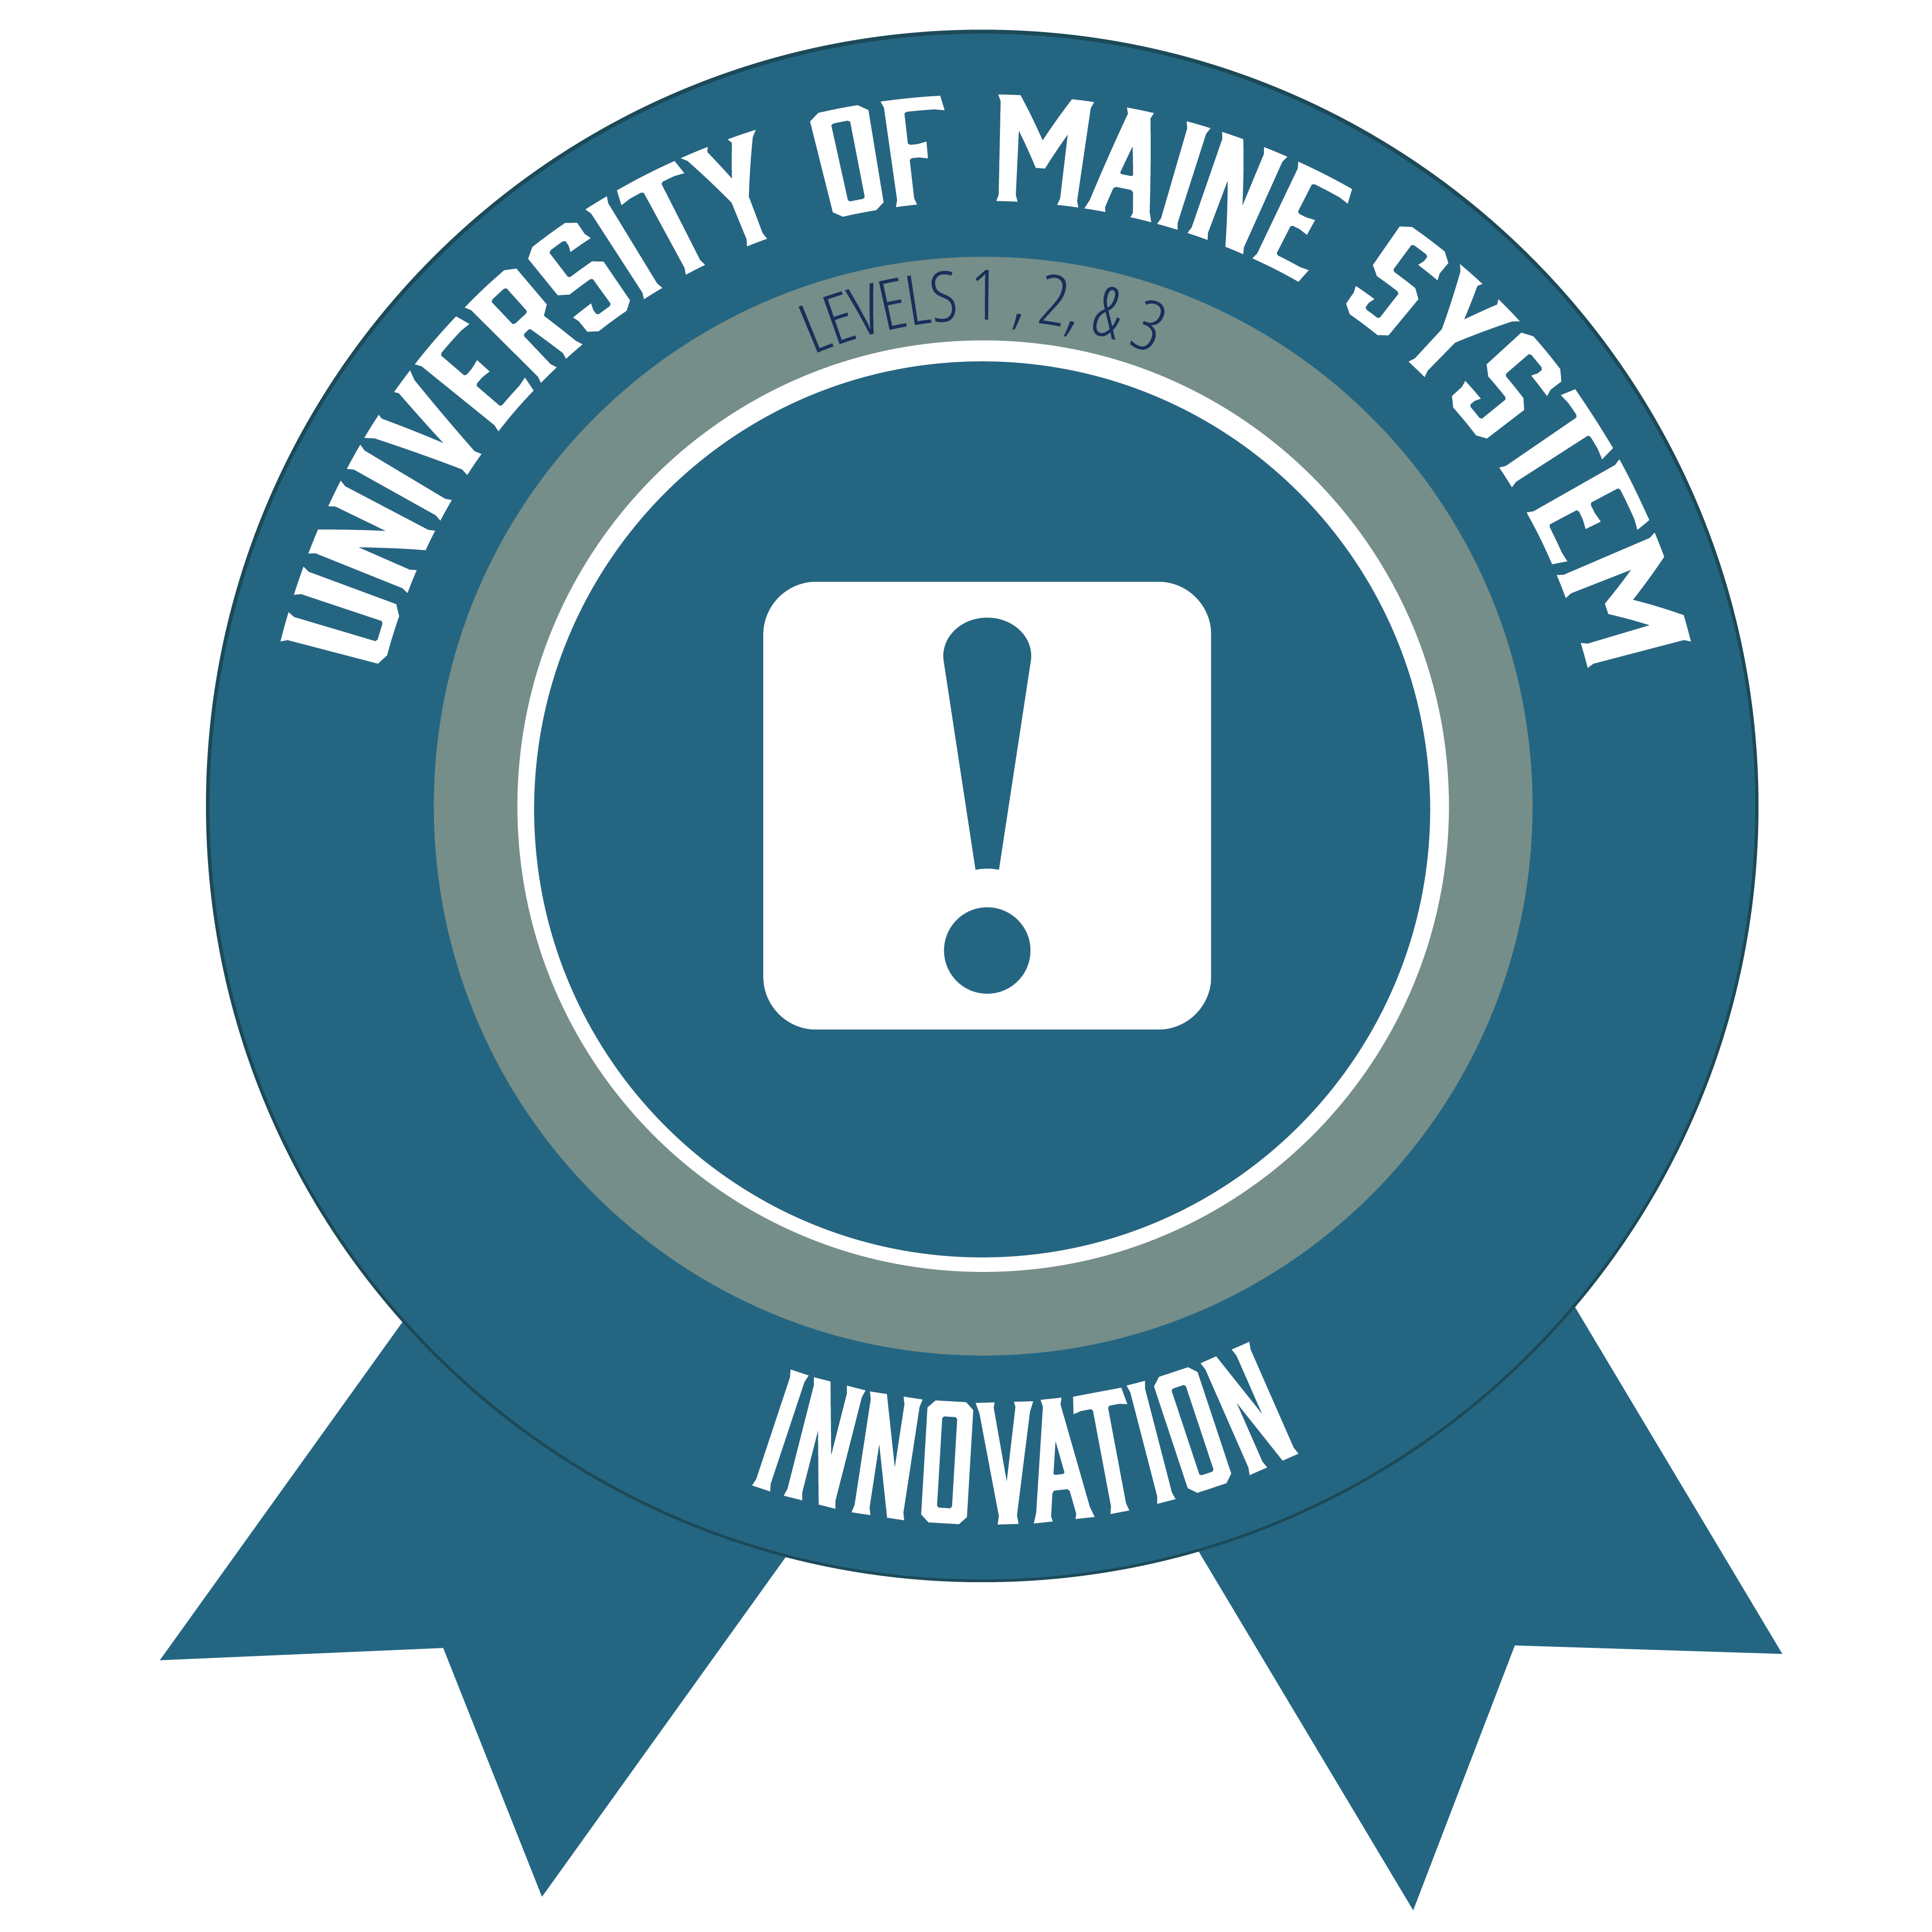 badge icon with text university of maine system innovation